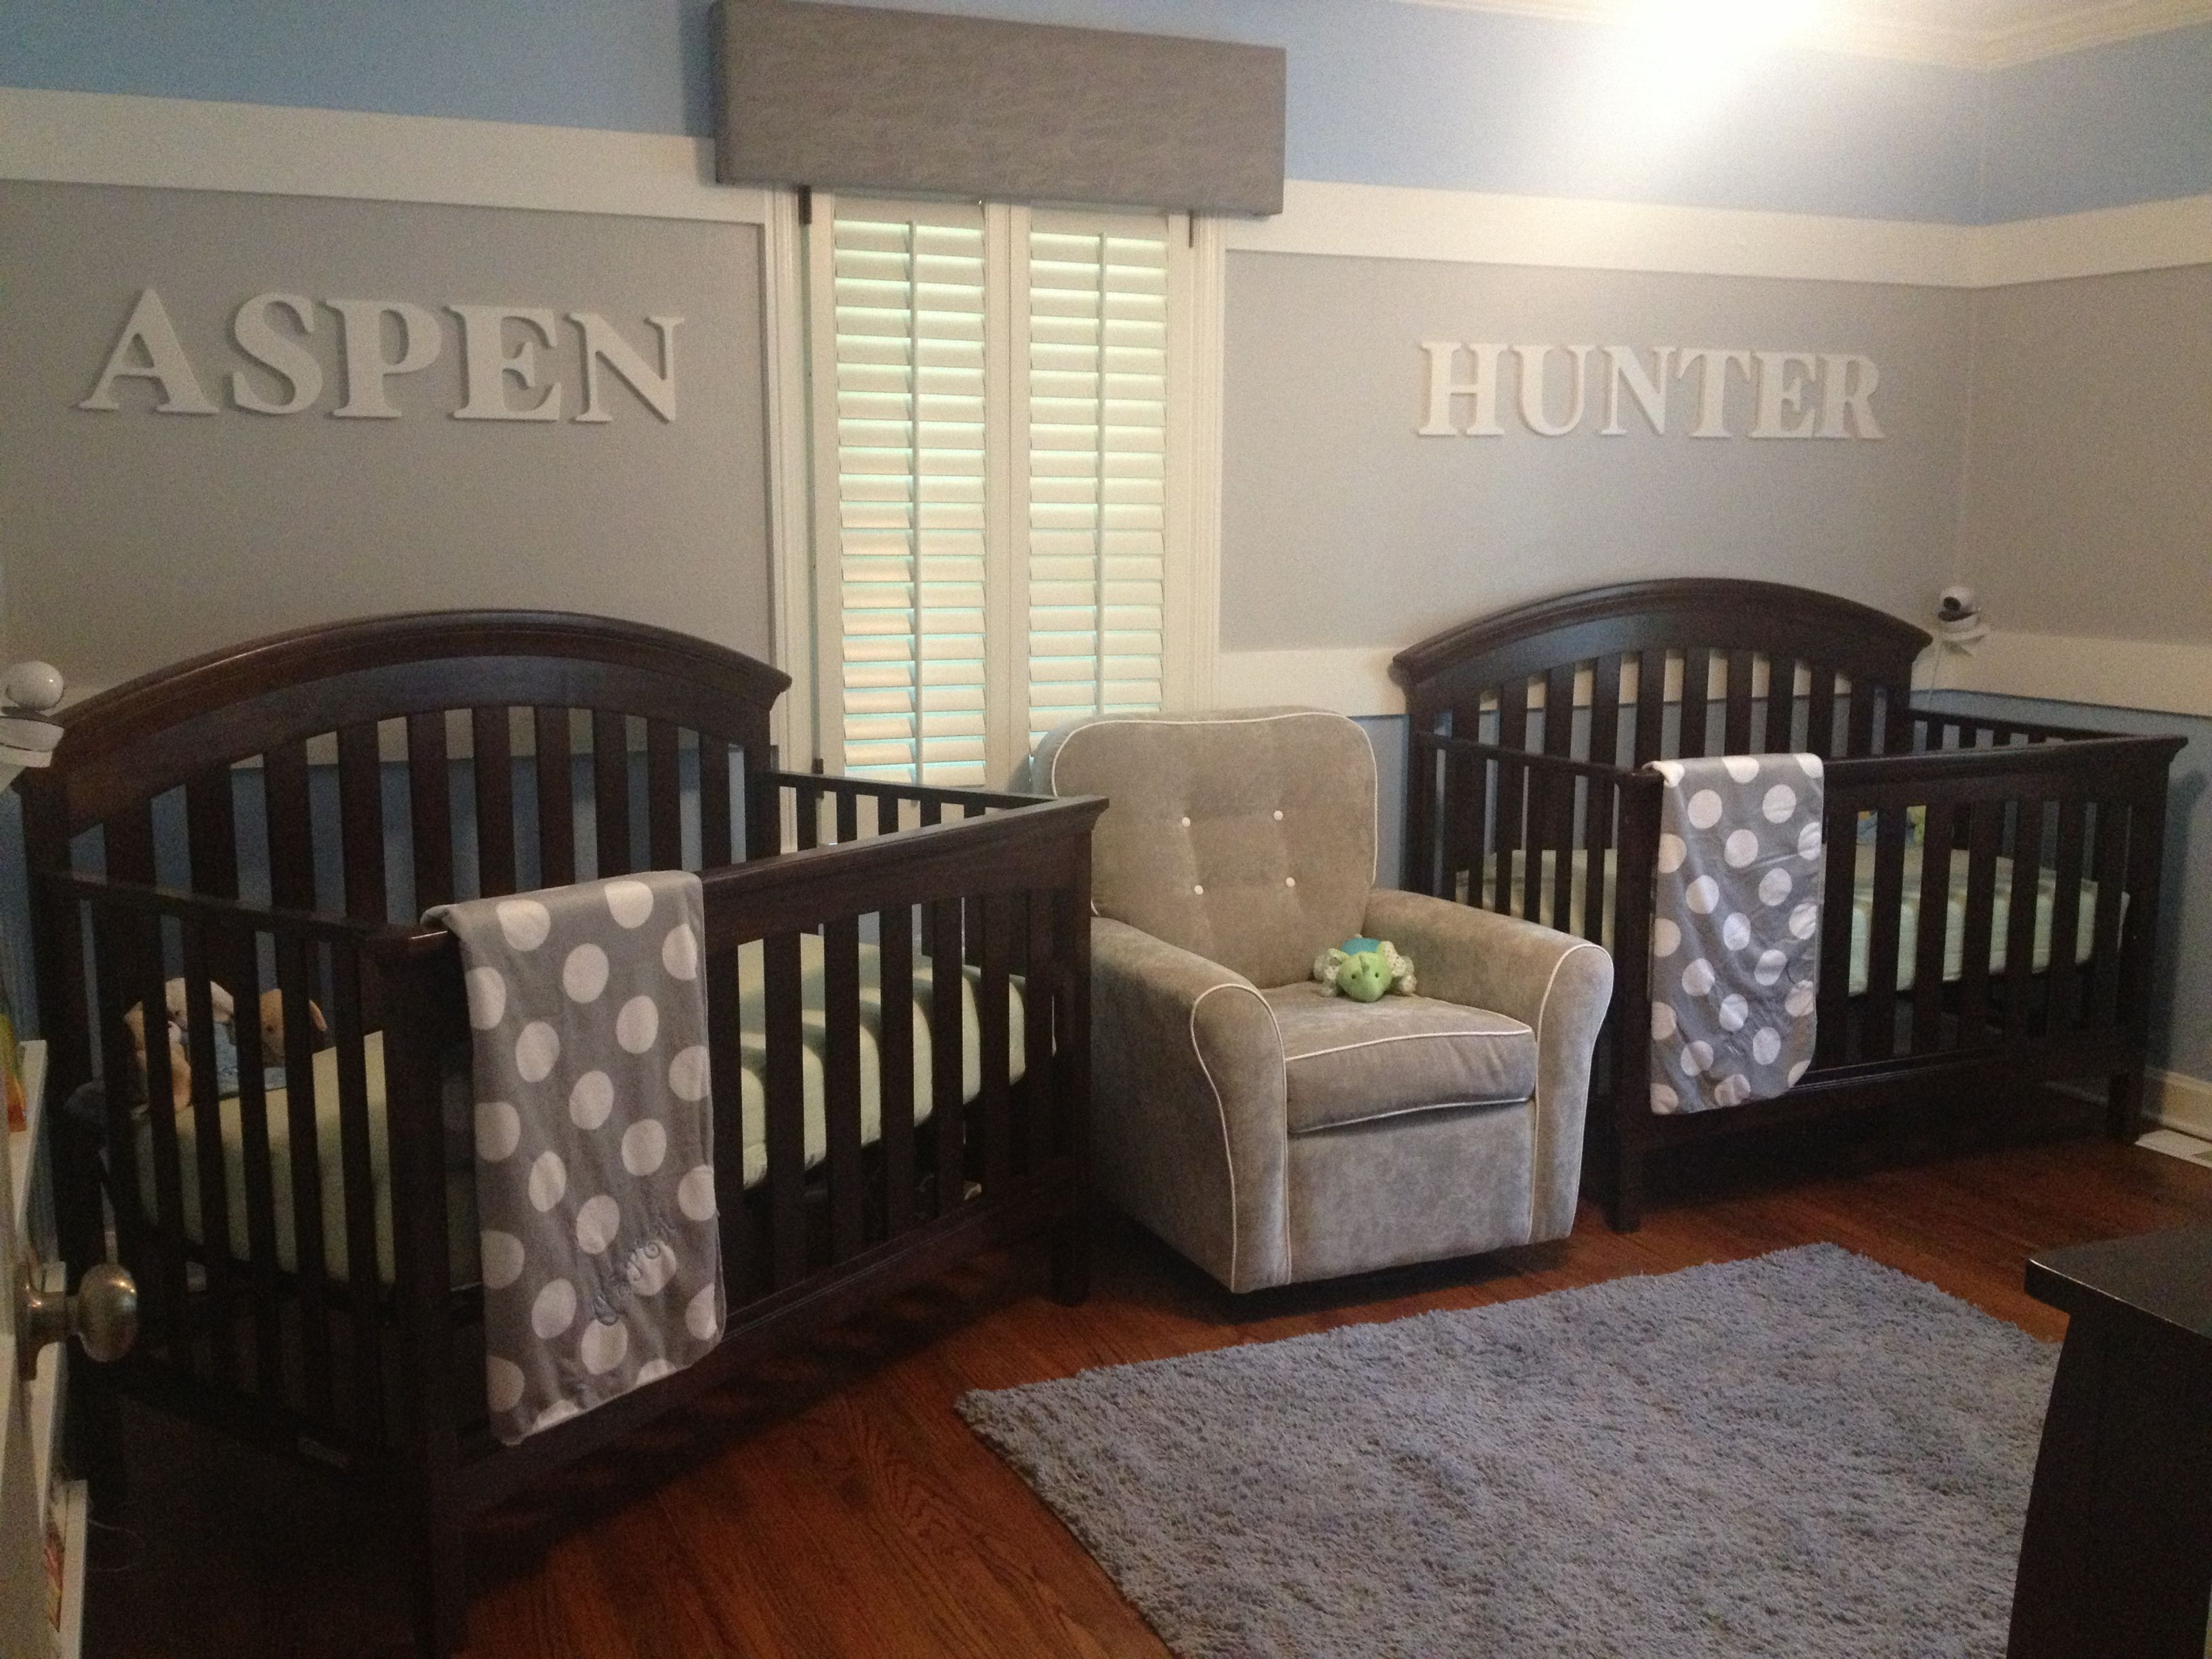 Baby Boy And Girl Room Ideas Our Twin baby boyu0027s nursery